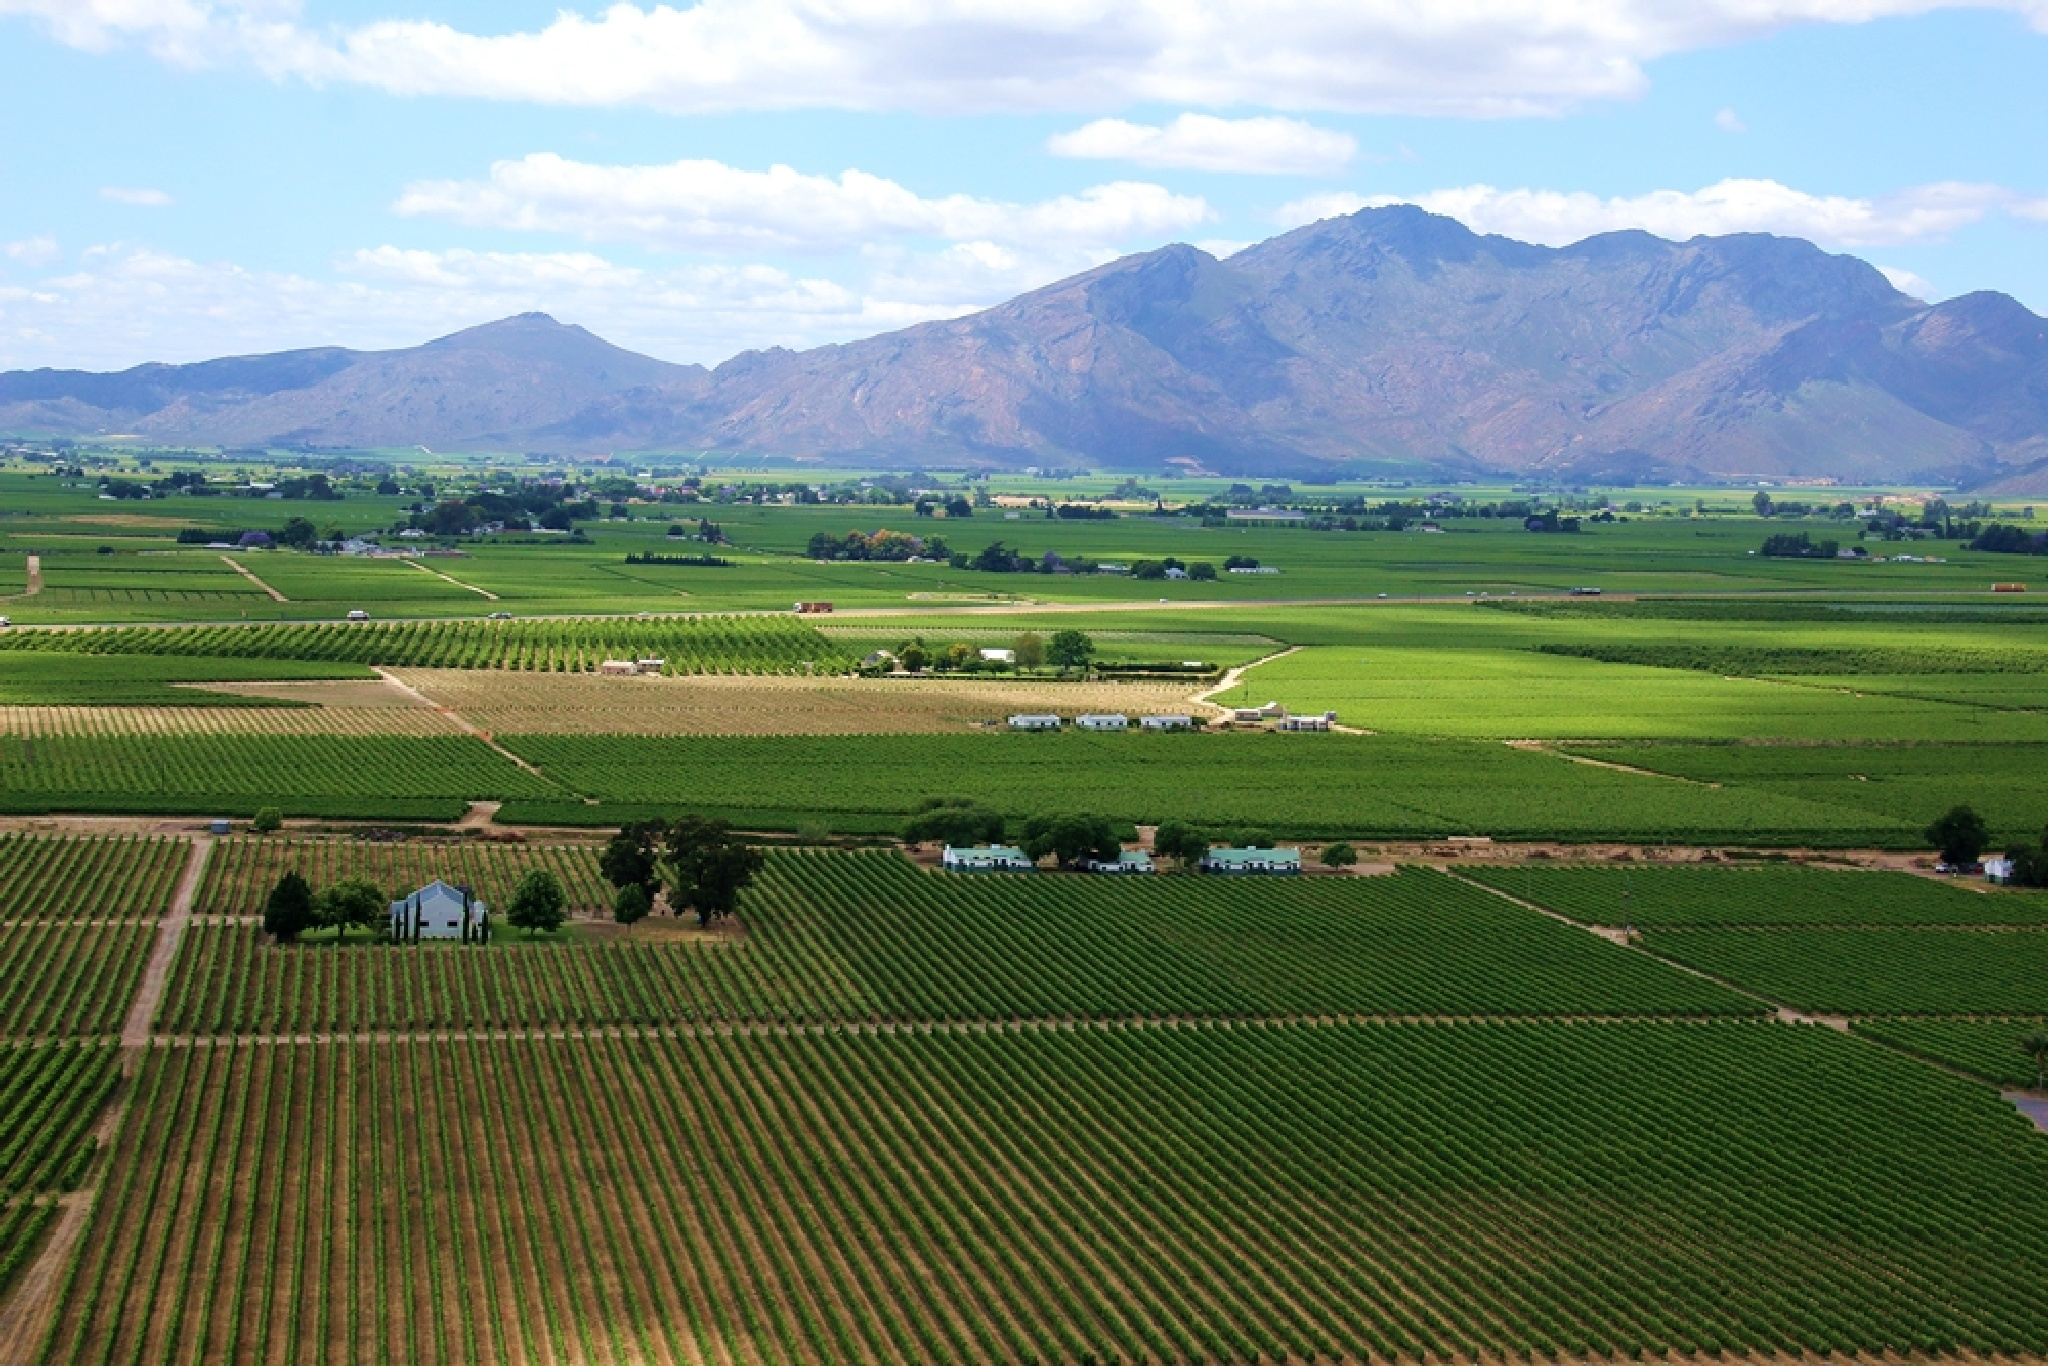 vineyards and mountains by ABRossouw